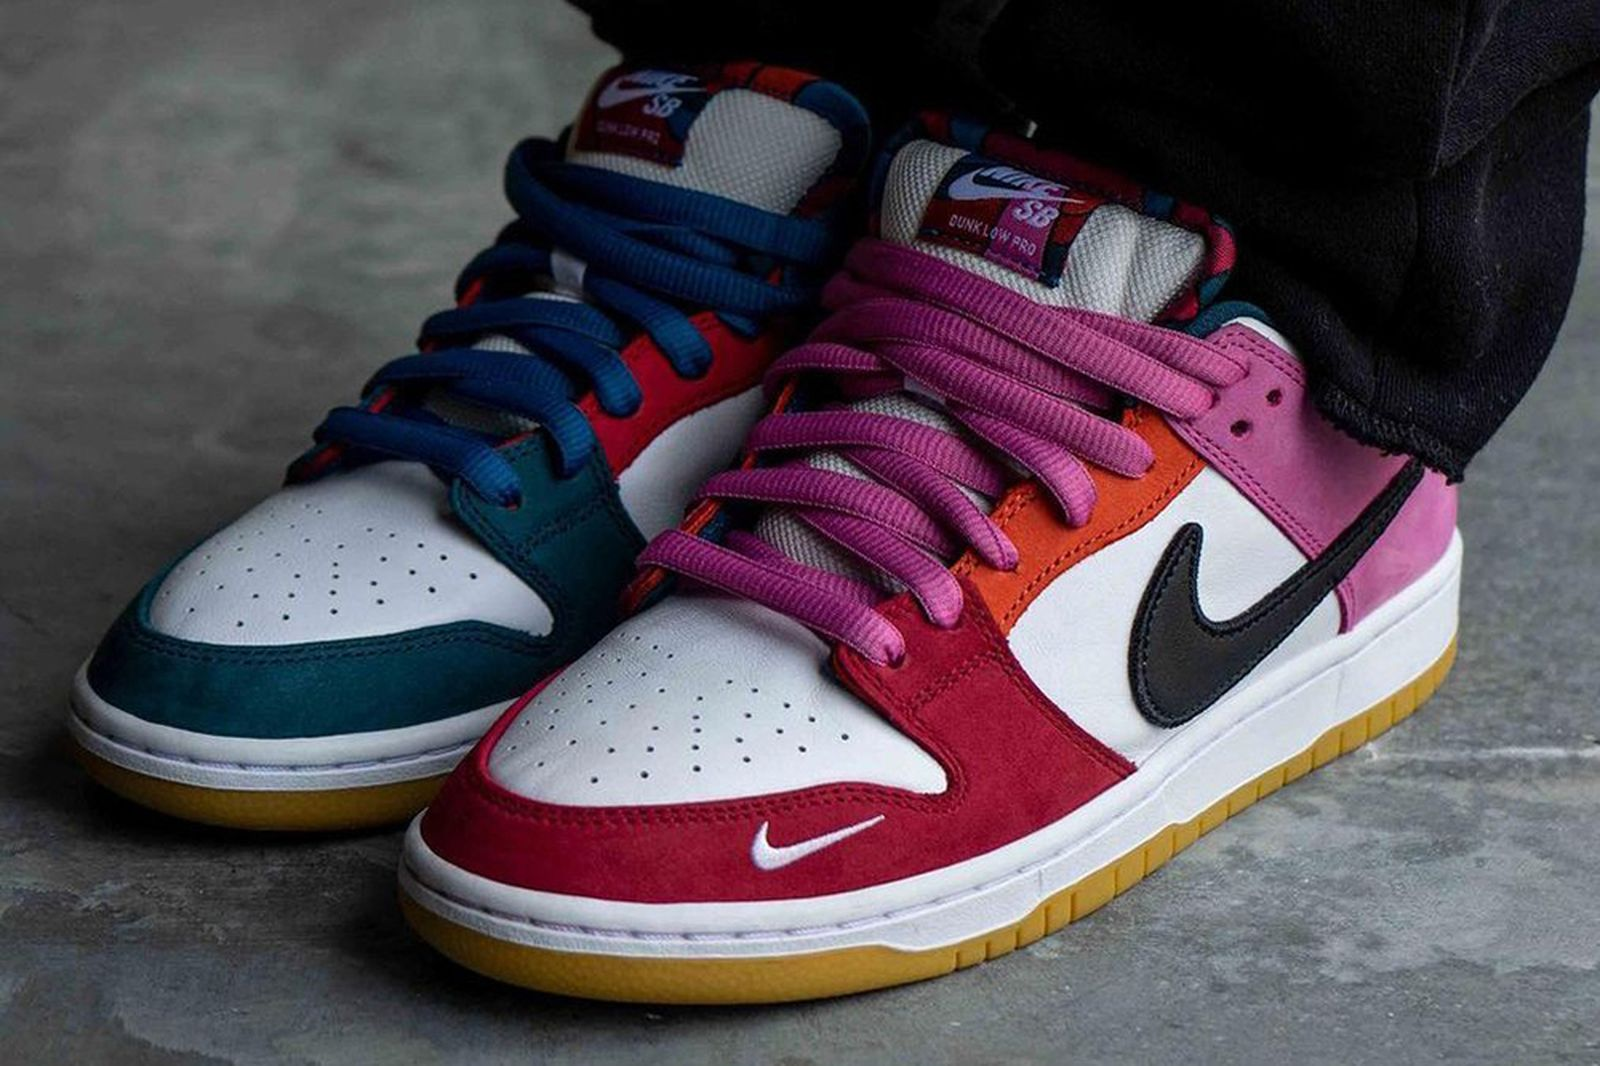 parra-nike-sb-dunk-low-2021-release-date-price-1-03